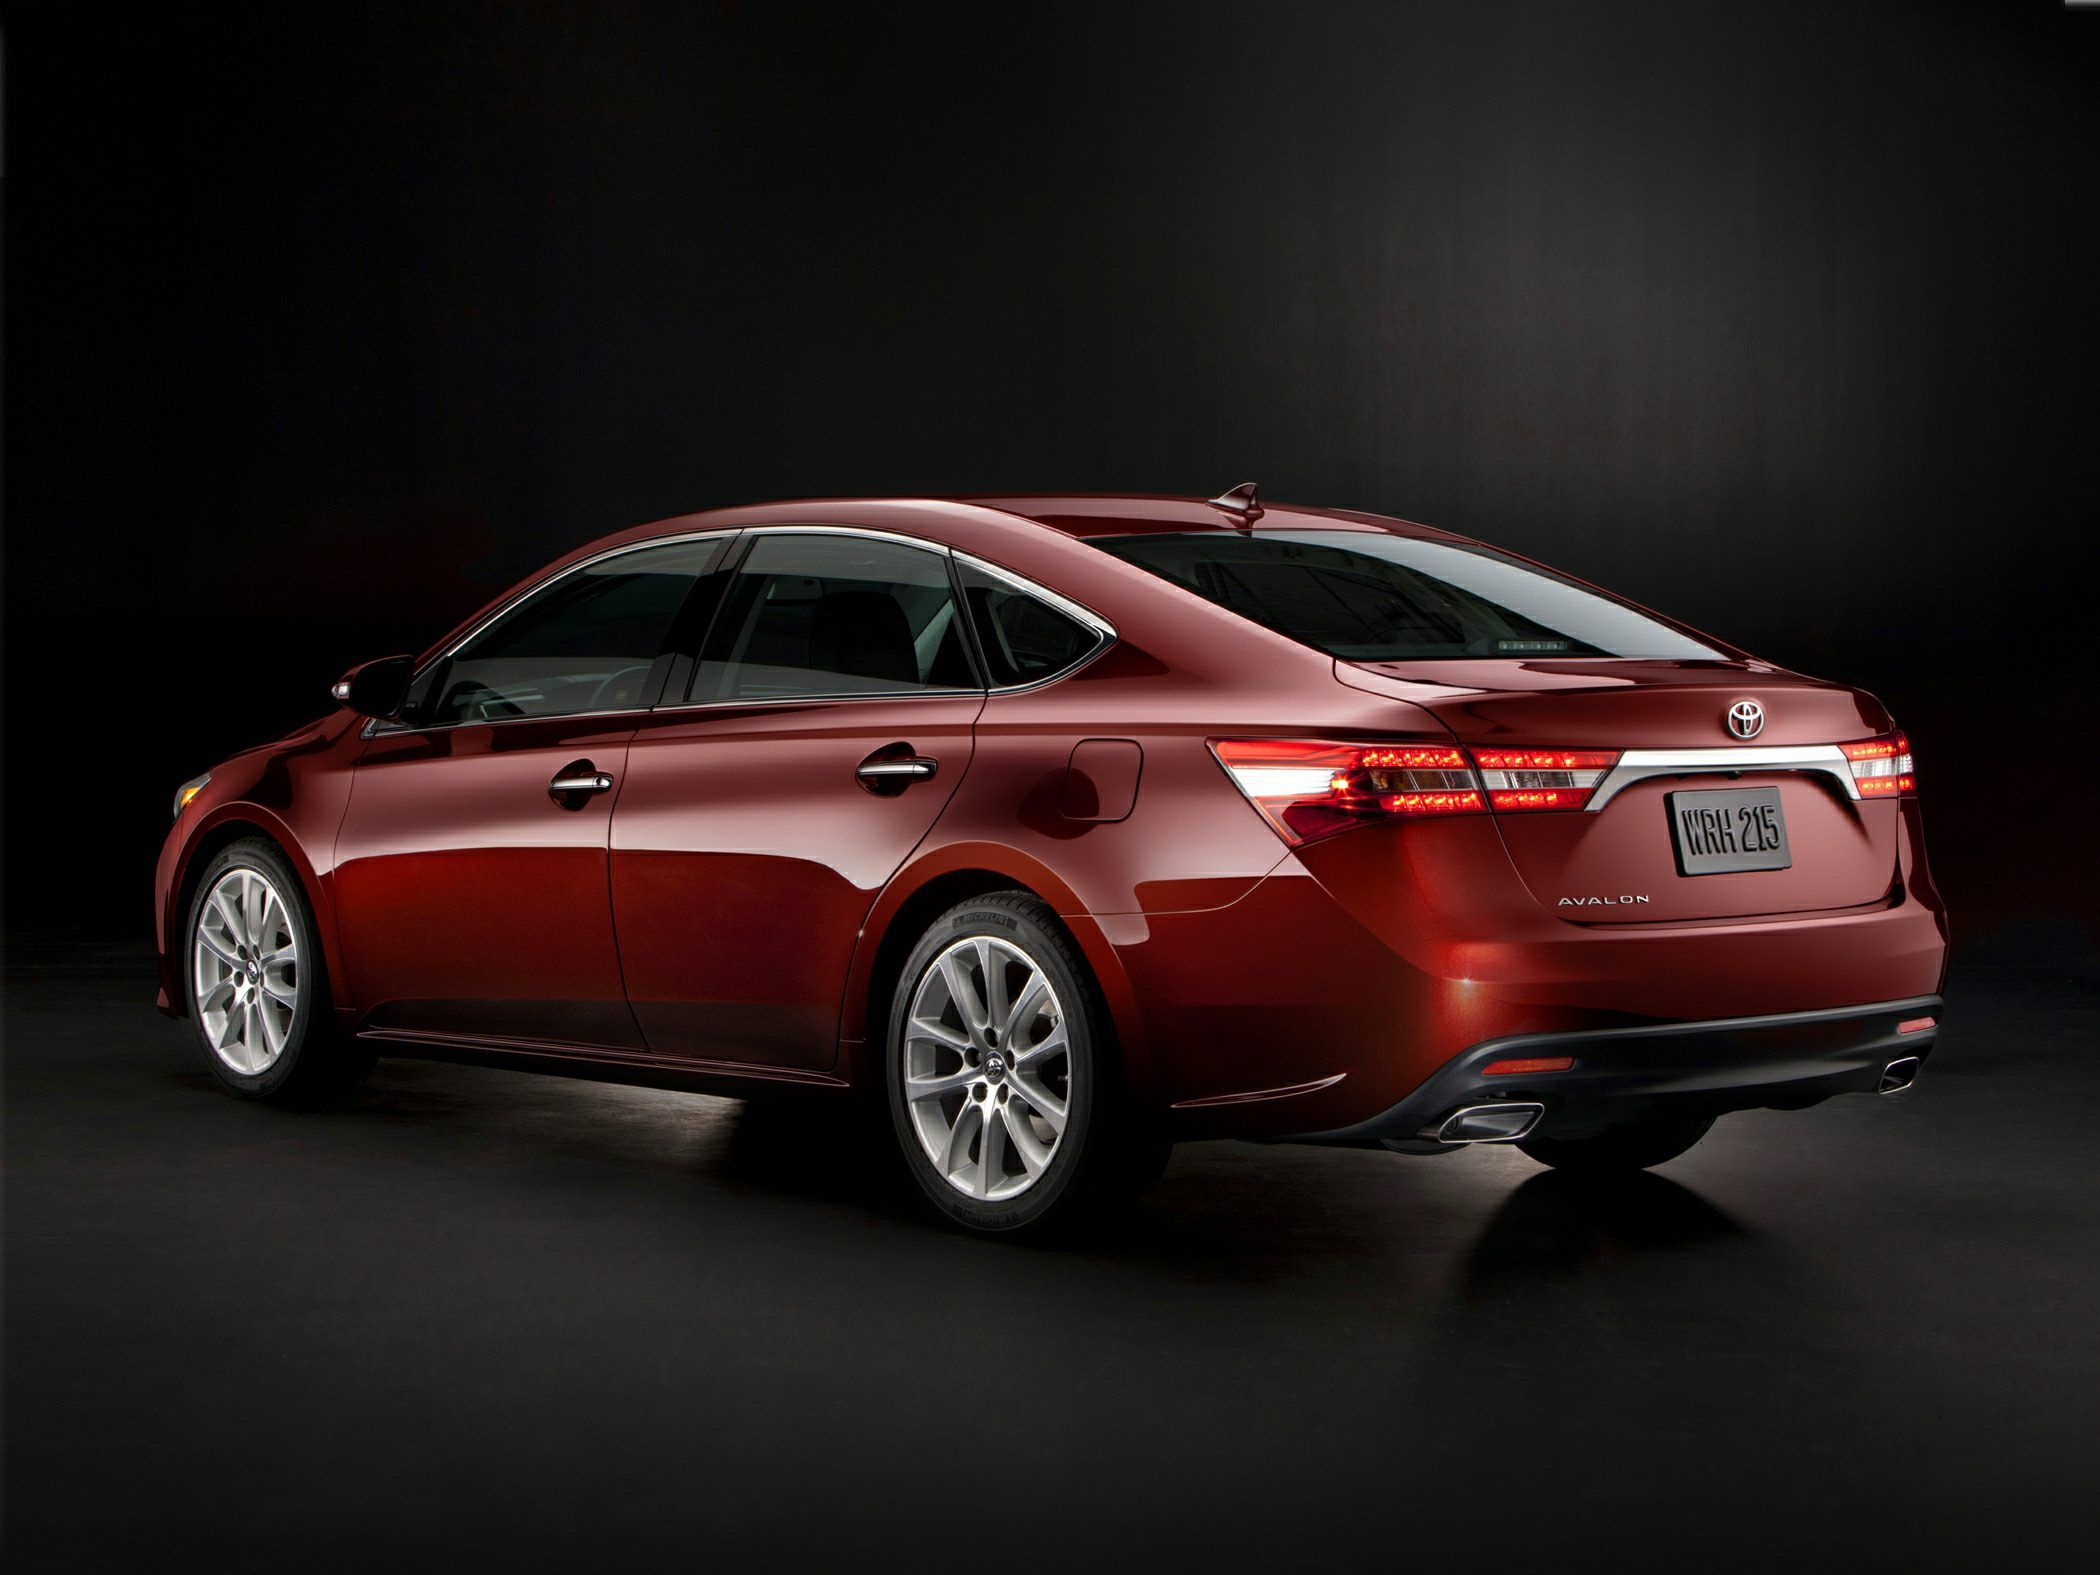 sporty step title away is saloon the from toyota avalon a of just